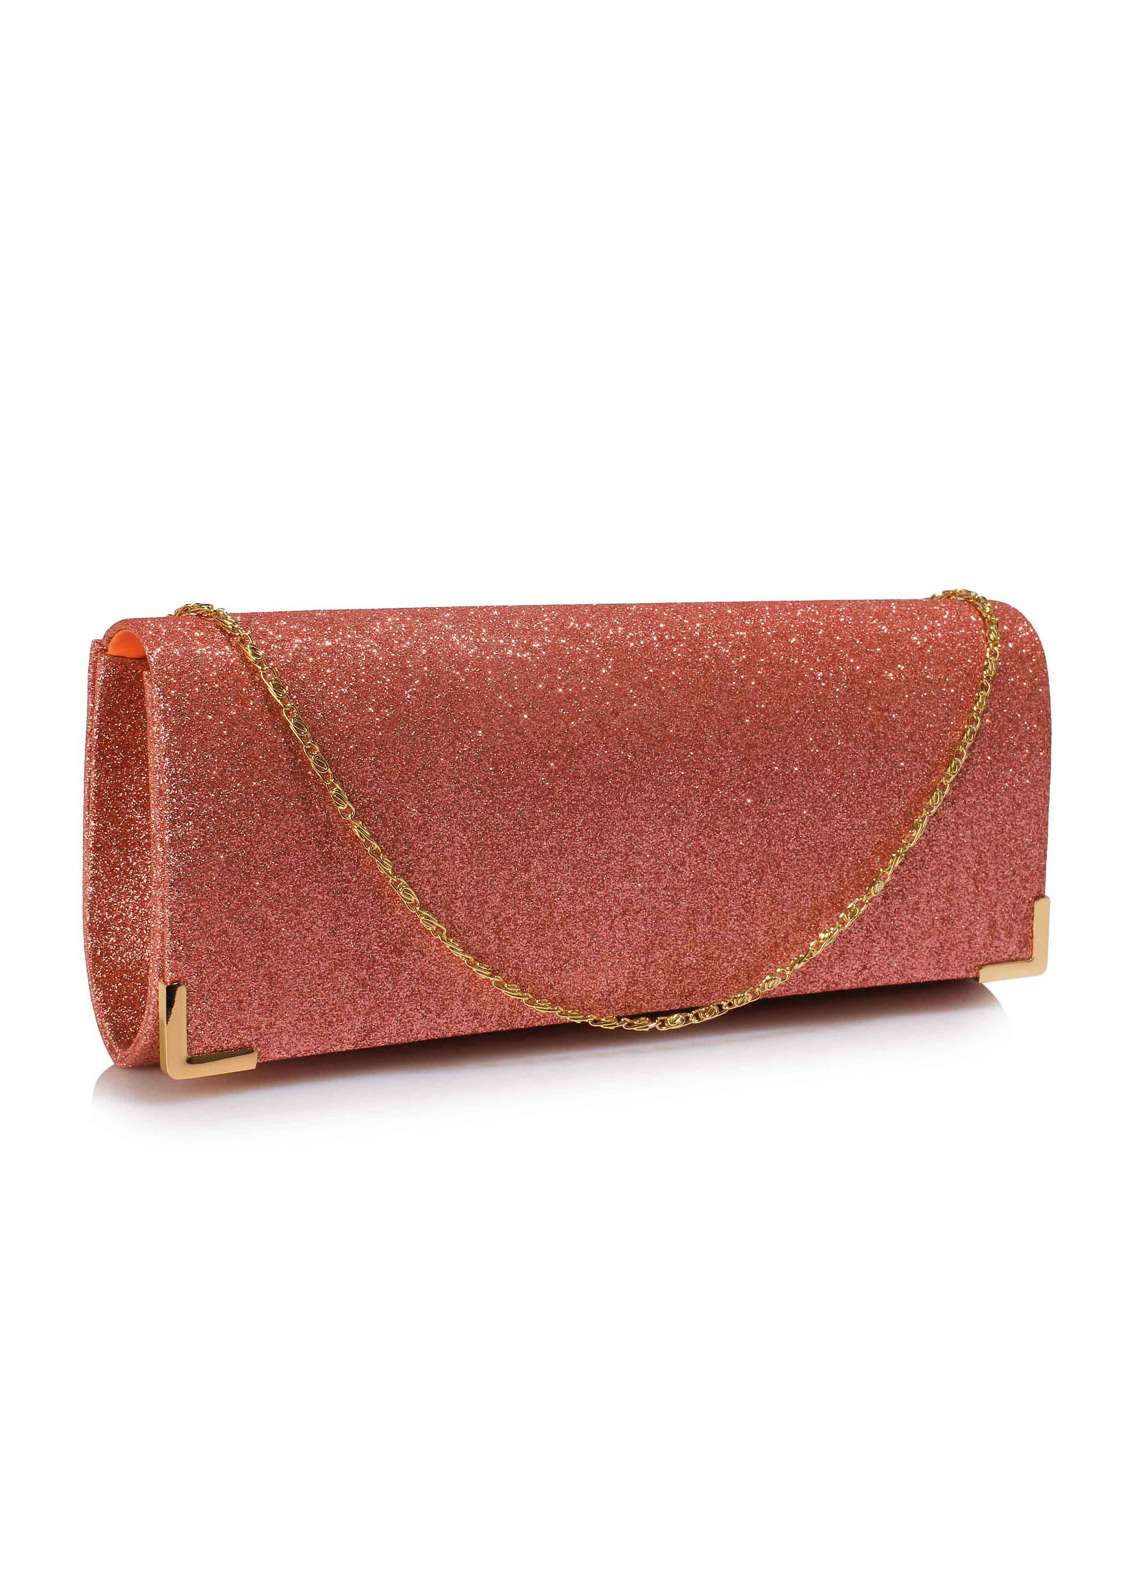 Fashion Only Satin Clutch Bags for Women Champagne